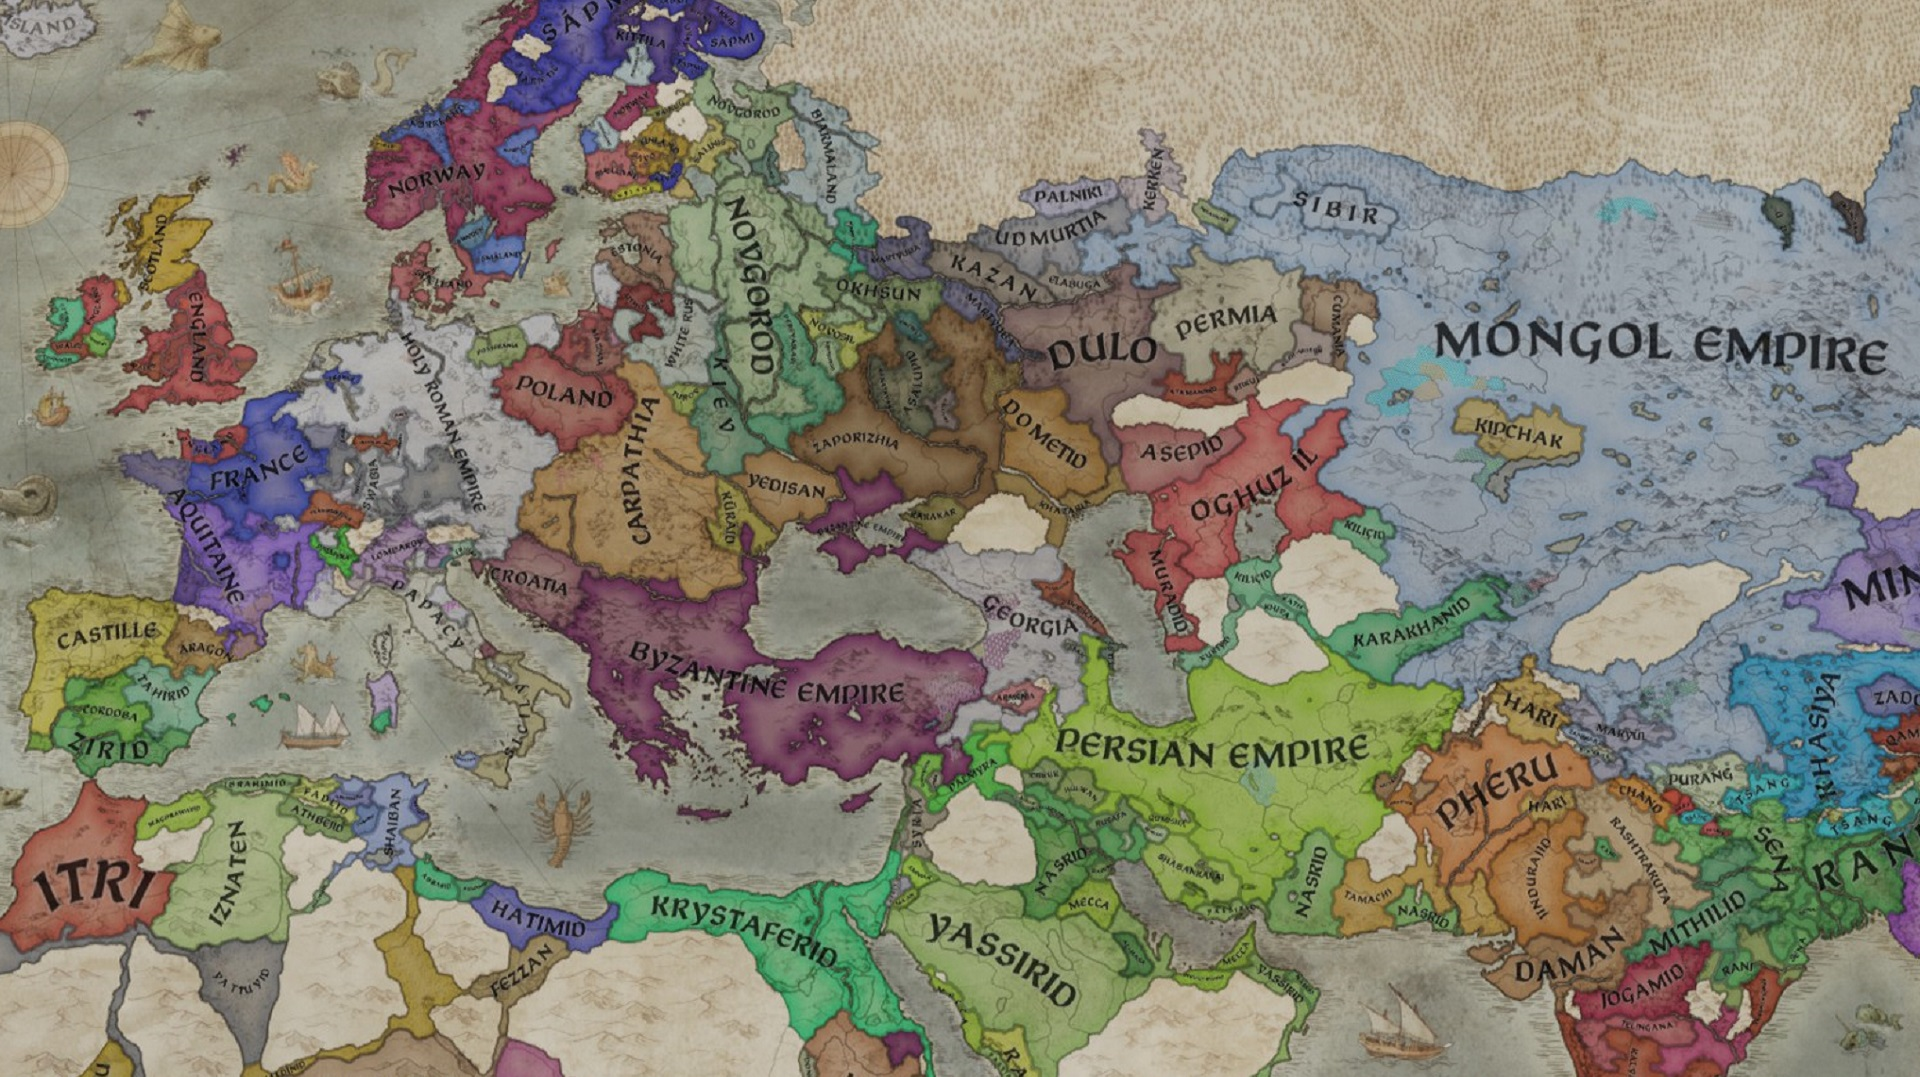 Crusader Kings 3 patch 1.4 'Azure' improves warfare, traits, and interactions